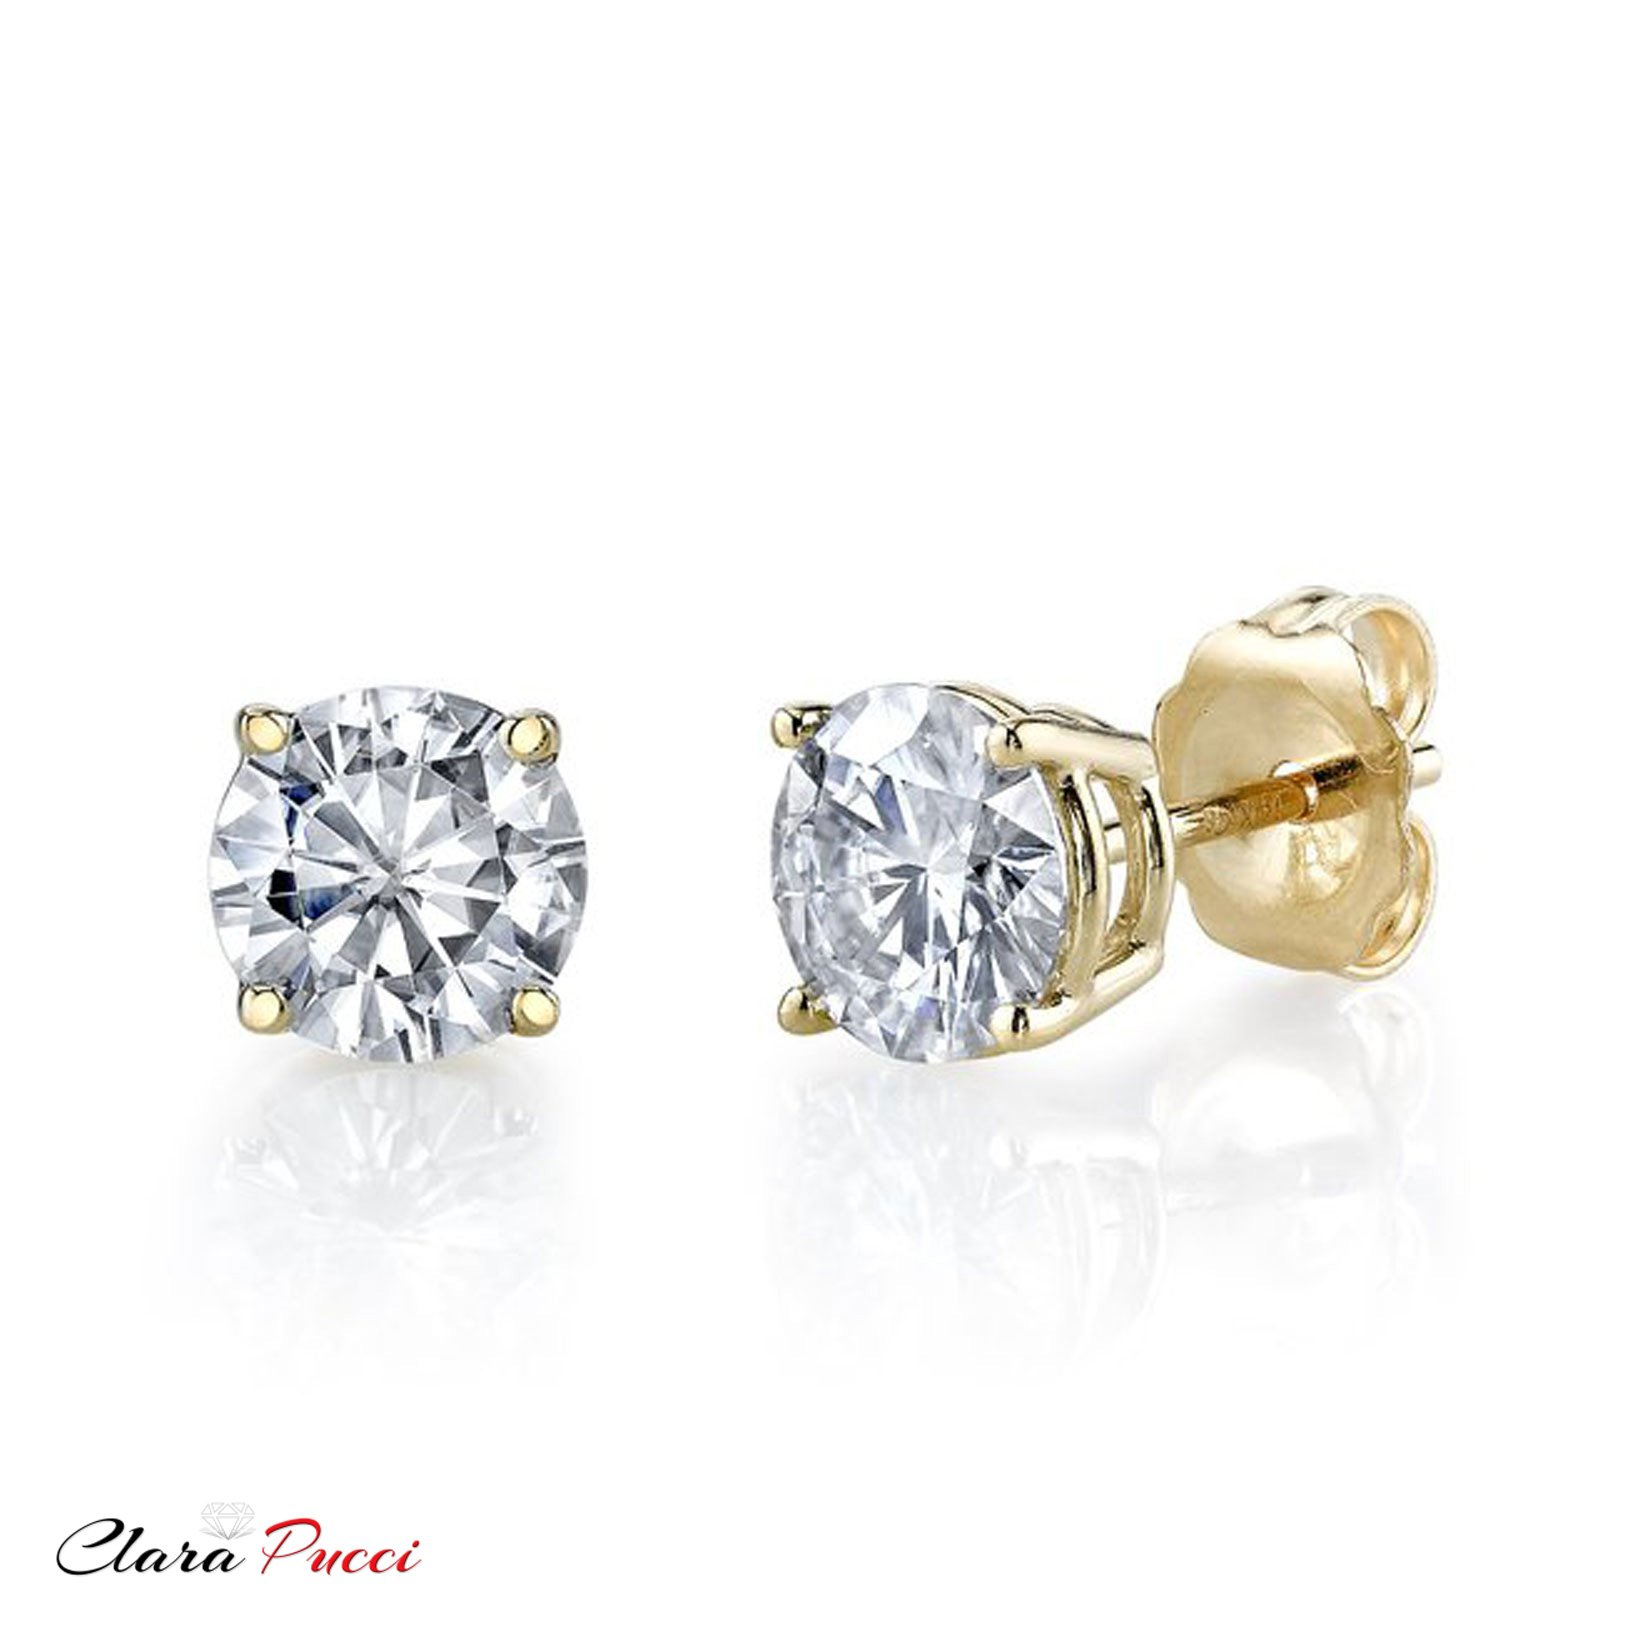 2.0 ct Round Brilliant Cut Simulated Diamond CZ Solitaire Stud Earrings in 14k Yellow Gold Push Back by Clara Pucci (Image #10)